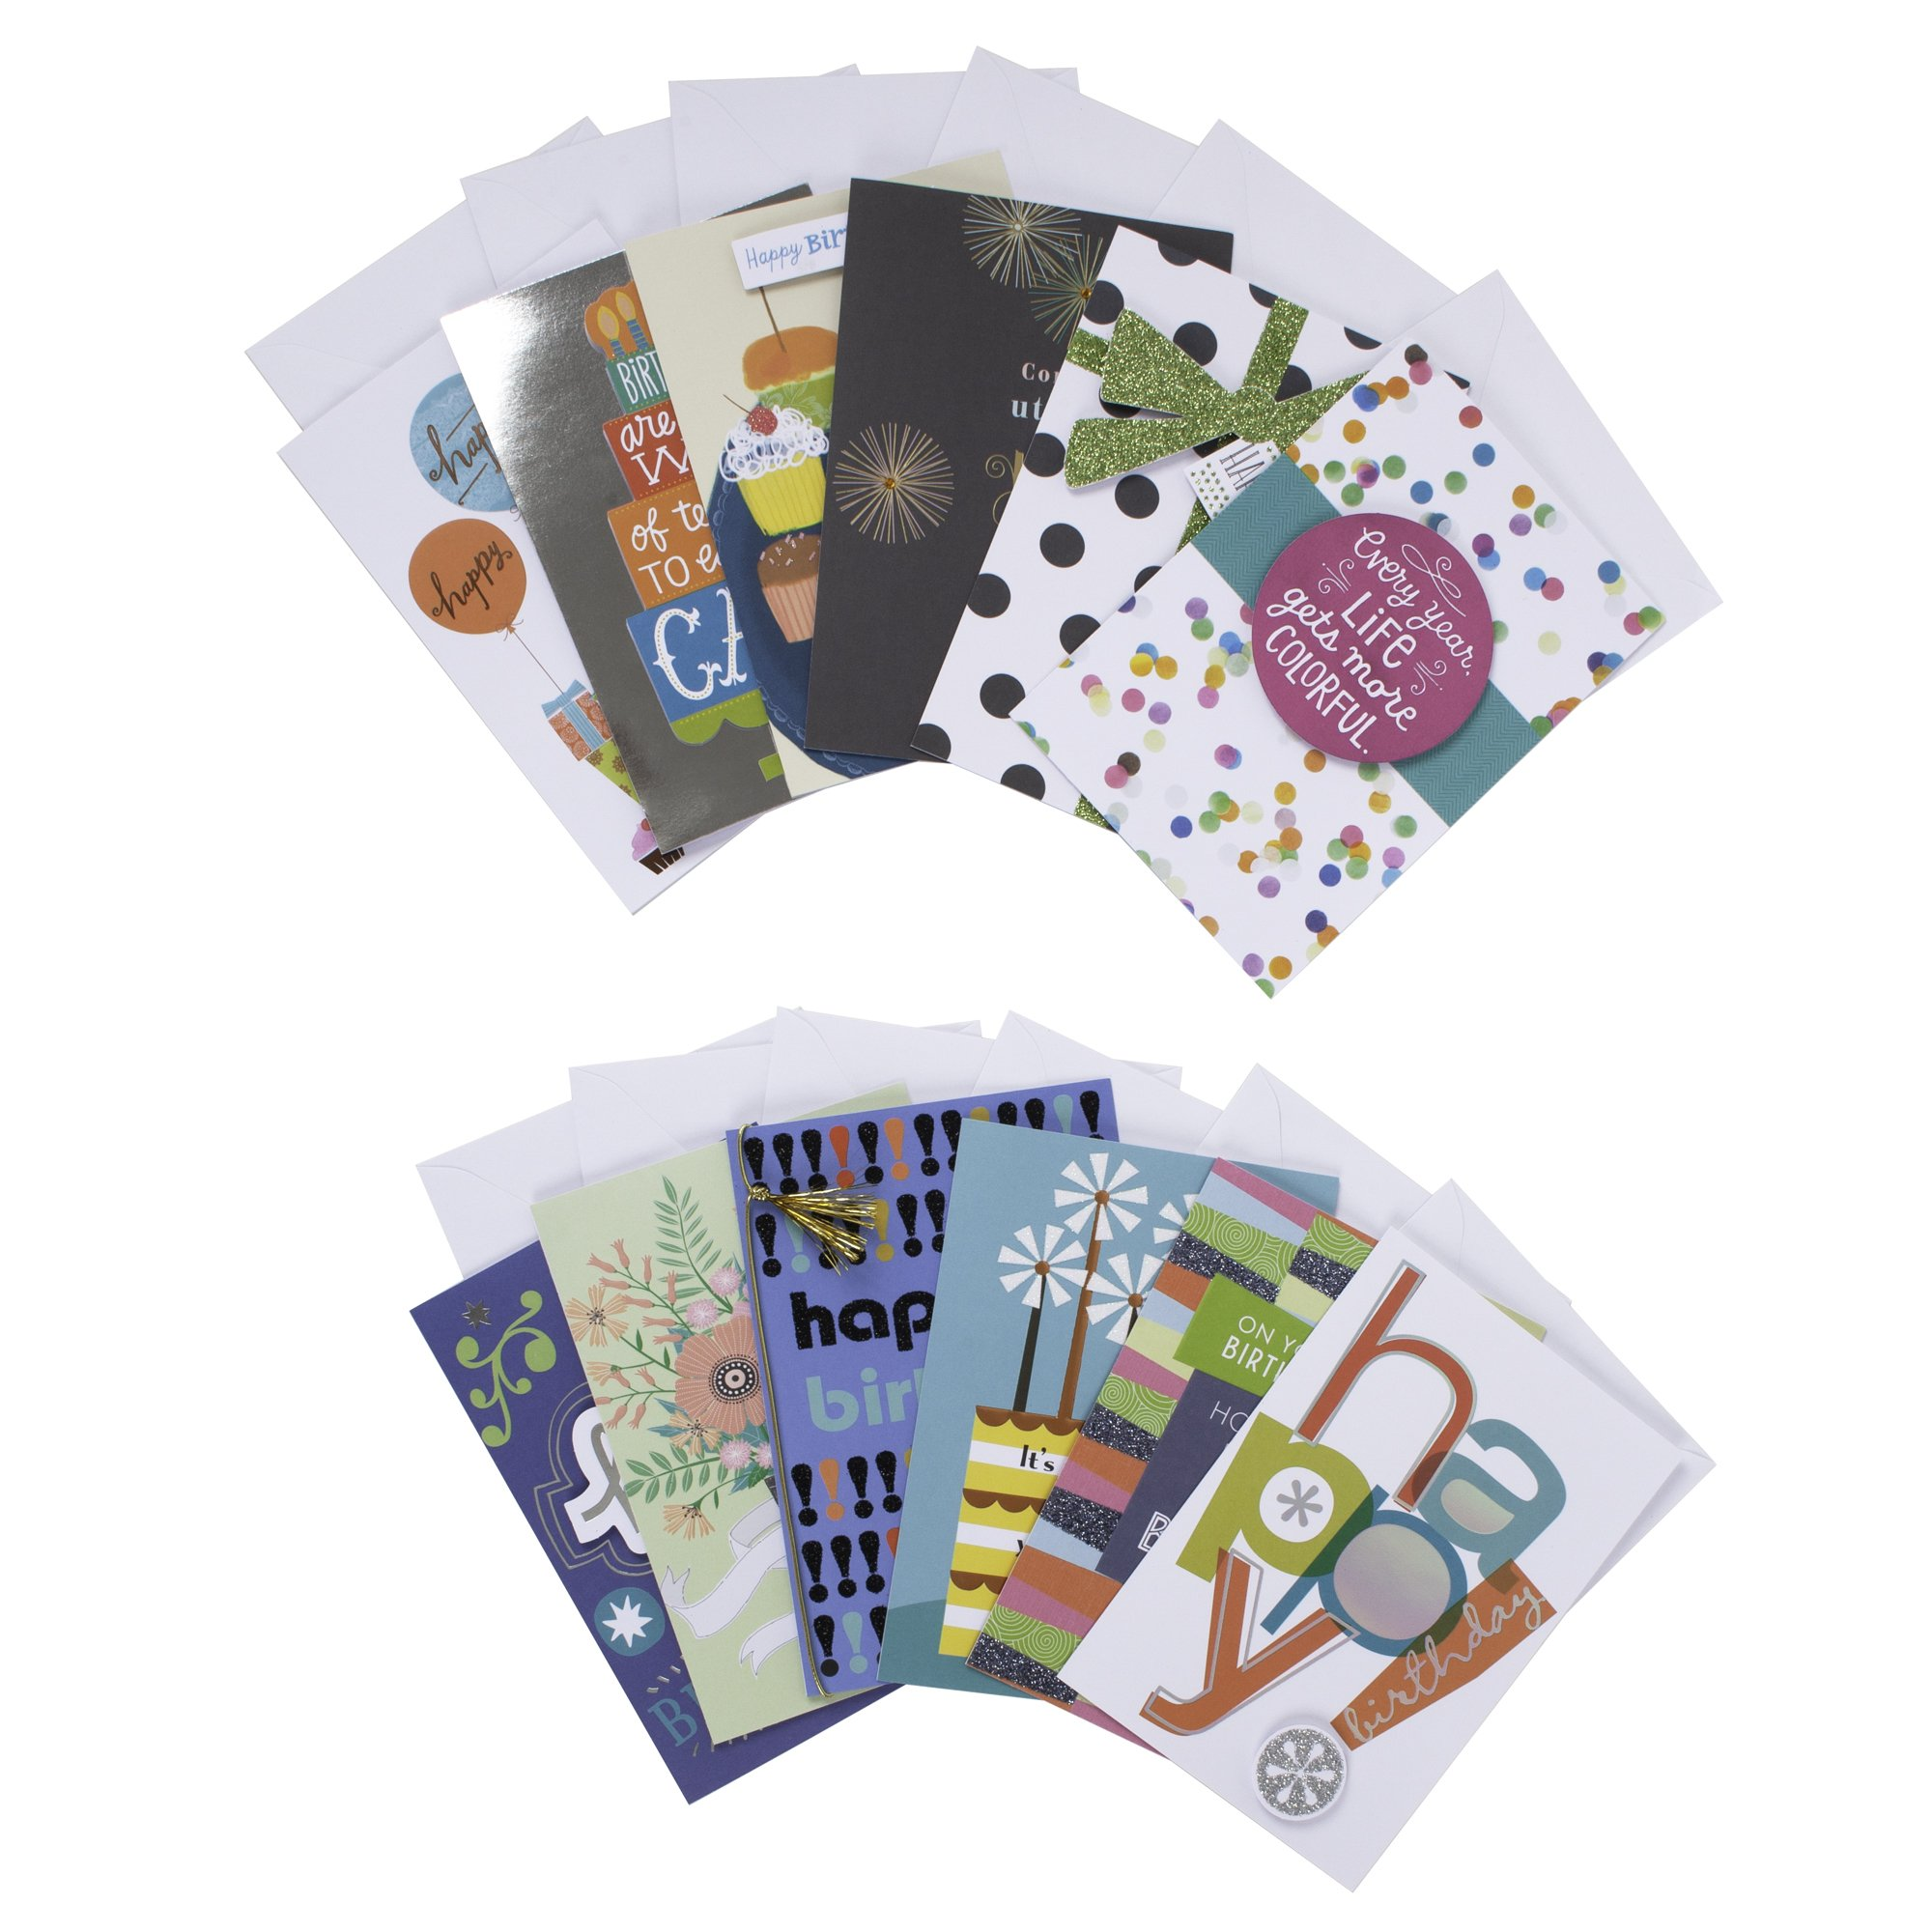 Hallmark Handmade Assorted Birthday Greeting Cards Box Set (Pack of 12 Cards with Envelopes Included)